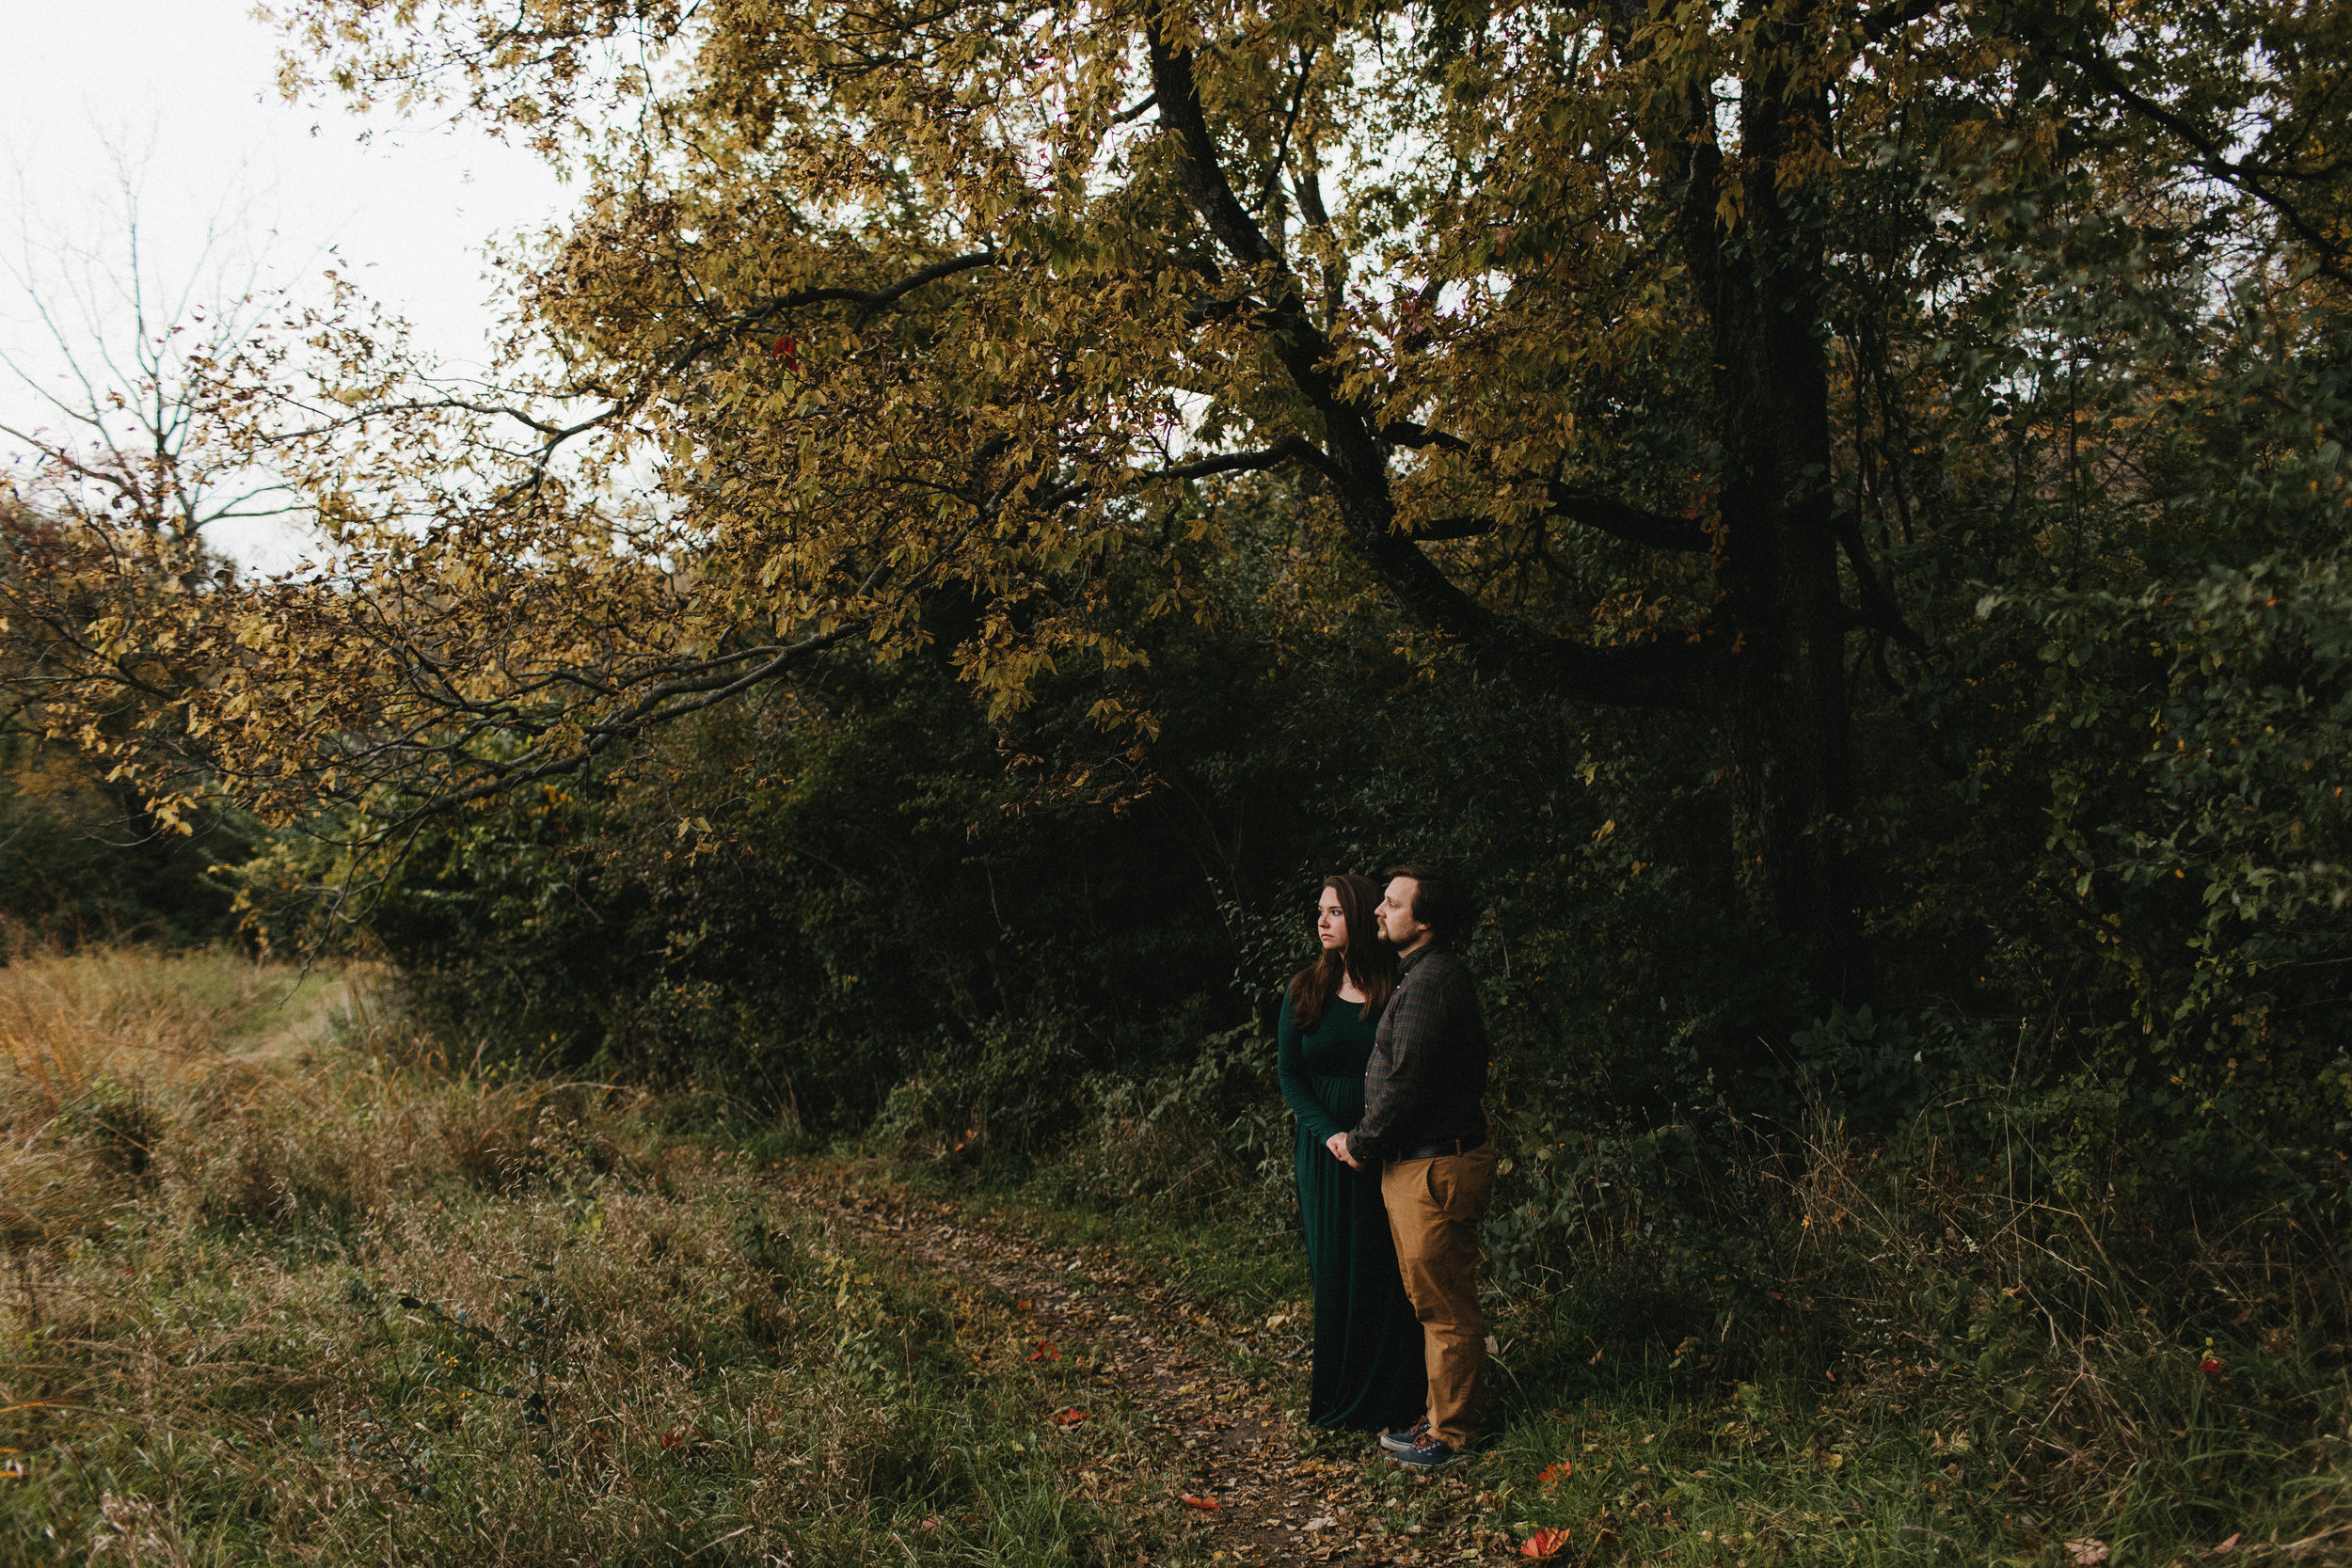 iowa_city_engagement_adventure_prairie_graduate_at_home_dog_couples_downtown_wilsons_orchard_1280.jpg